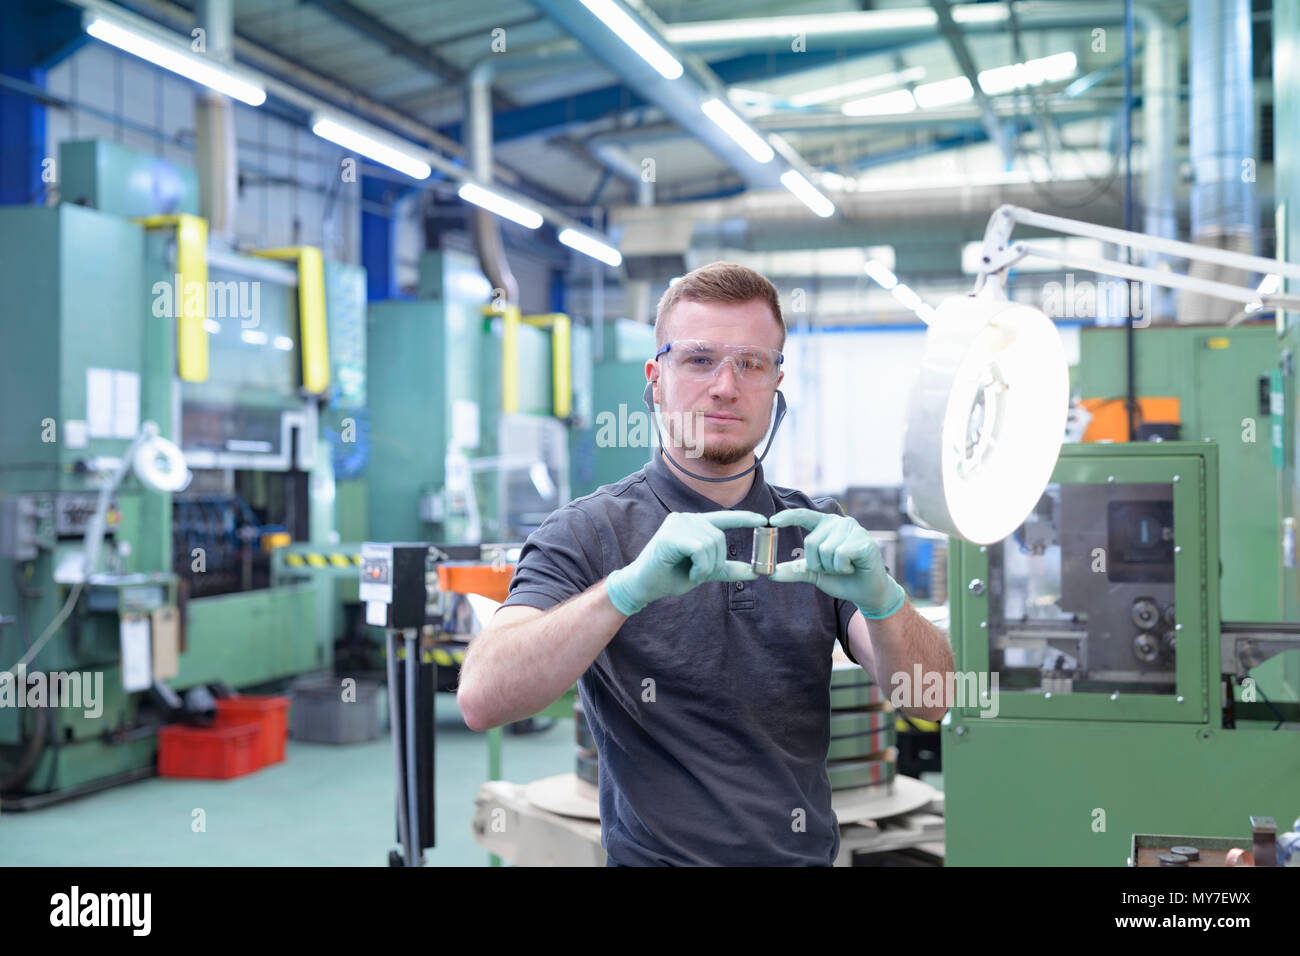 Engineer holding pressed part in metal pressing factory - Stock Image